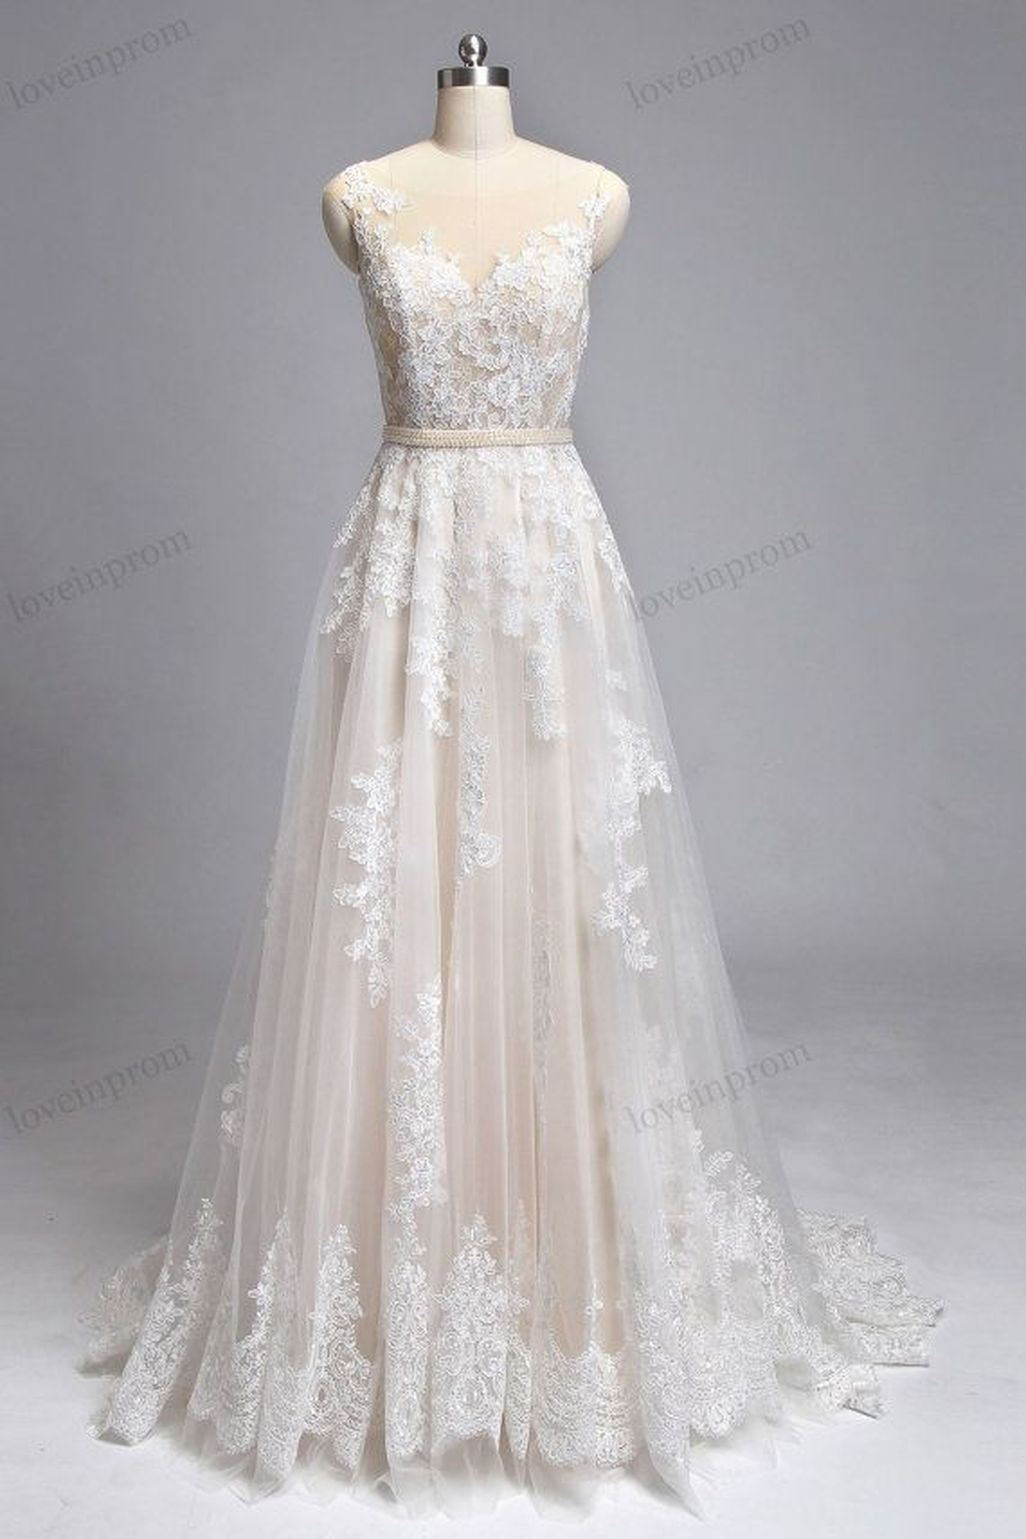 elegant and vintage lace wedding dresses ideas pretty things